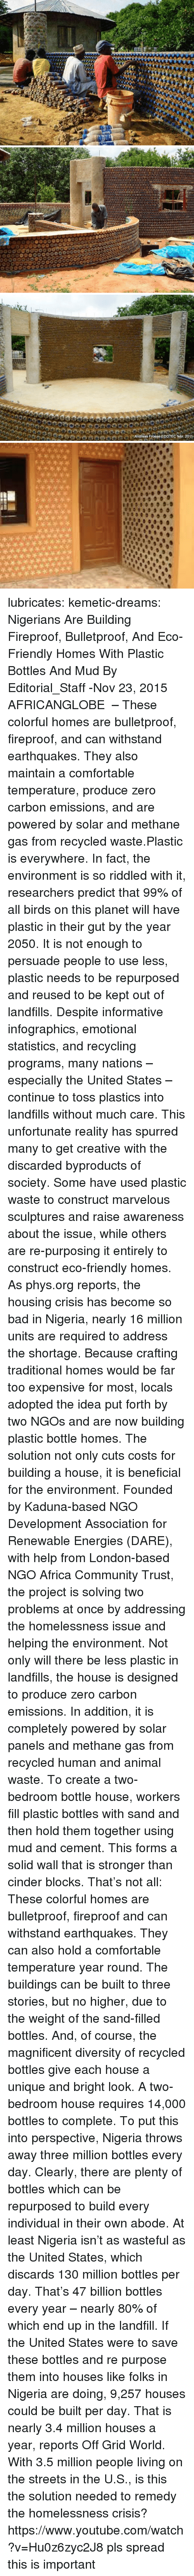 Nigeria: lubricates:  kemetic-dreams:   Nigerians Are Building Fireproof, Bulletproof, And Eco-Friendly Homes With Plastic Bottles And Mud By Editorial_Staff -Nov 23, 2015   AFRICANGLOBE  – These colorful homes are bulletproof, fireproof, and can withstand earthquakes. They also maintain a comfortable temperature, produce zero carbon emissions, and are powered by solar and methane gas from recycled waste.Plastic is everywhere. In fact, the environment is so riddled with it, researchers predict that 99% of all birds on this planet will have plastic in their gut by the year 2050. It is not enough to persuade people to use less, plastic needs to be repurposed and reused to be kept out of landfills. Despite informative infographics, emotional statistics, and recycling programs, many nations – especially the United States – continue to toss plastics into landfills without much care. This unfortunate reality has spurred many to get creative with the discarded byproducts of society. Some have used plastic waste to construct marvelous sculptures and raise awareness about the issue, while others are re-purposing it entirely to construct eco-friendly homes. As phys.org reports, the housing crisis has become so bad in Nigeria, nearly 16 million units are required to address the shortage. Because crafting traditional homes would be far too expensive for most, locals adopted the idea put forth by two NGOs and are now building plastic bottle homes. The solution not only cuts costs for building a house, it is beneficial for the environment. Founded by Kaduna-based NGO Development Association for Renewable Energies (DARE), with help from London-based NGO Africa Community Trust, the project is solving two problems at once by addressing the homelessness issue and helping the environment. Not only will there be less plastic in landfills, the house is designed to produce zero carbon emissions. In addition, it is completely powered by solar panels and methane gas from recycled human and animal waste. To create a two-bedroom bottle house, workers fill plastic bottles with sand and then hold them together using mud and cement. This forms a solid wall that is stronger than cinder blocks. That's not all: These colorful homes are bulletproof, fireproof and can withstand earthquakes. They can also hold a comfortable temperature year round. The buildings can be built to three stories, but no higher, due to the weight of the sand-filled bottles. And, of course, the magnificent diversity of recycled bottles give each house a unique and bright look. A two-bedroom house requires 14,000 bottles to complete. To put this into perspective, Nigeria throws away three million bottles every day. Clearly, there are plenty of bottles which can be repurposed to build every individual in their own abode. At least Nigeria isn't as wasteful as the United States, which discards 130 million bottles per day. That's 47 billion bottles every year – nearly 80% of which end up in the landfill.  If the United States were to save these bottles and re purpose them into houses like folks in Nigeria are doing, 9,257 houses could be built per day. That is nearly 3.4 million houses a year, reports Off Grid World. With 3.5 million people living on the streets in the U.S., is this the solution needed to remedy the homelessness crisis? https://www.youtube.com/watch?v=Hu0z6zyc2J8  pls spread this is important